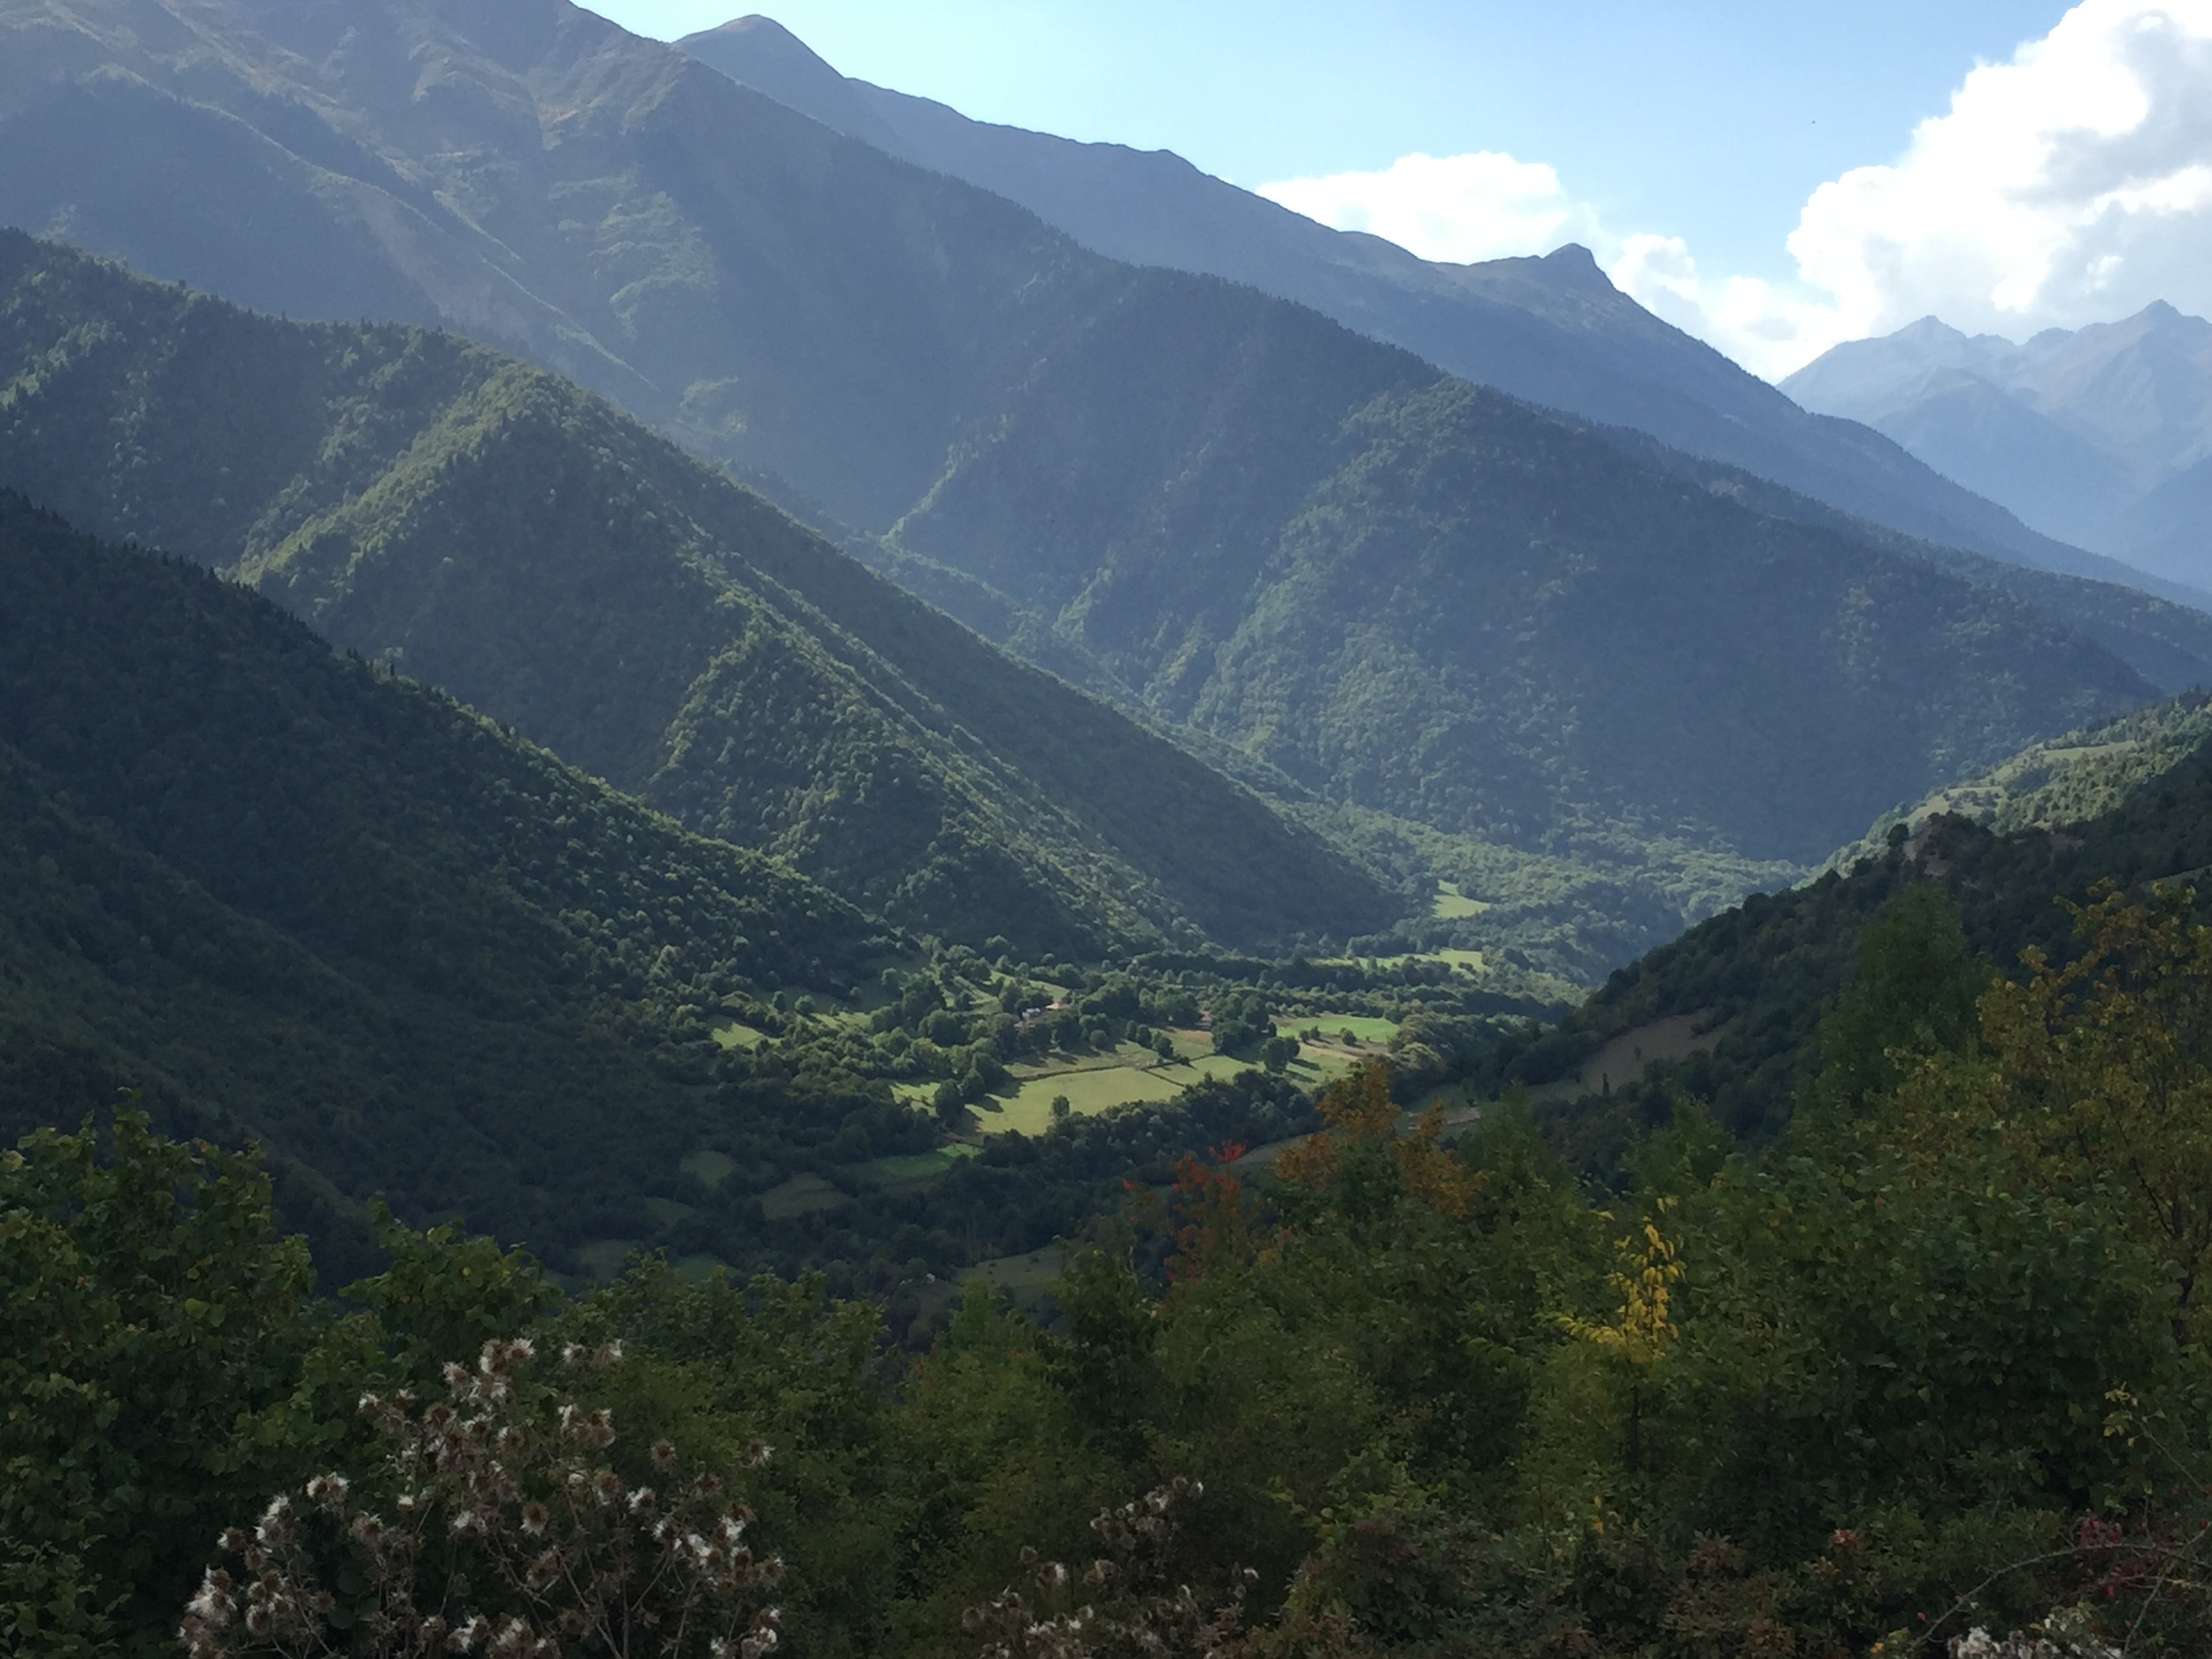 The Svaneti Valley, Georgia